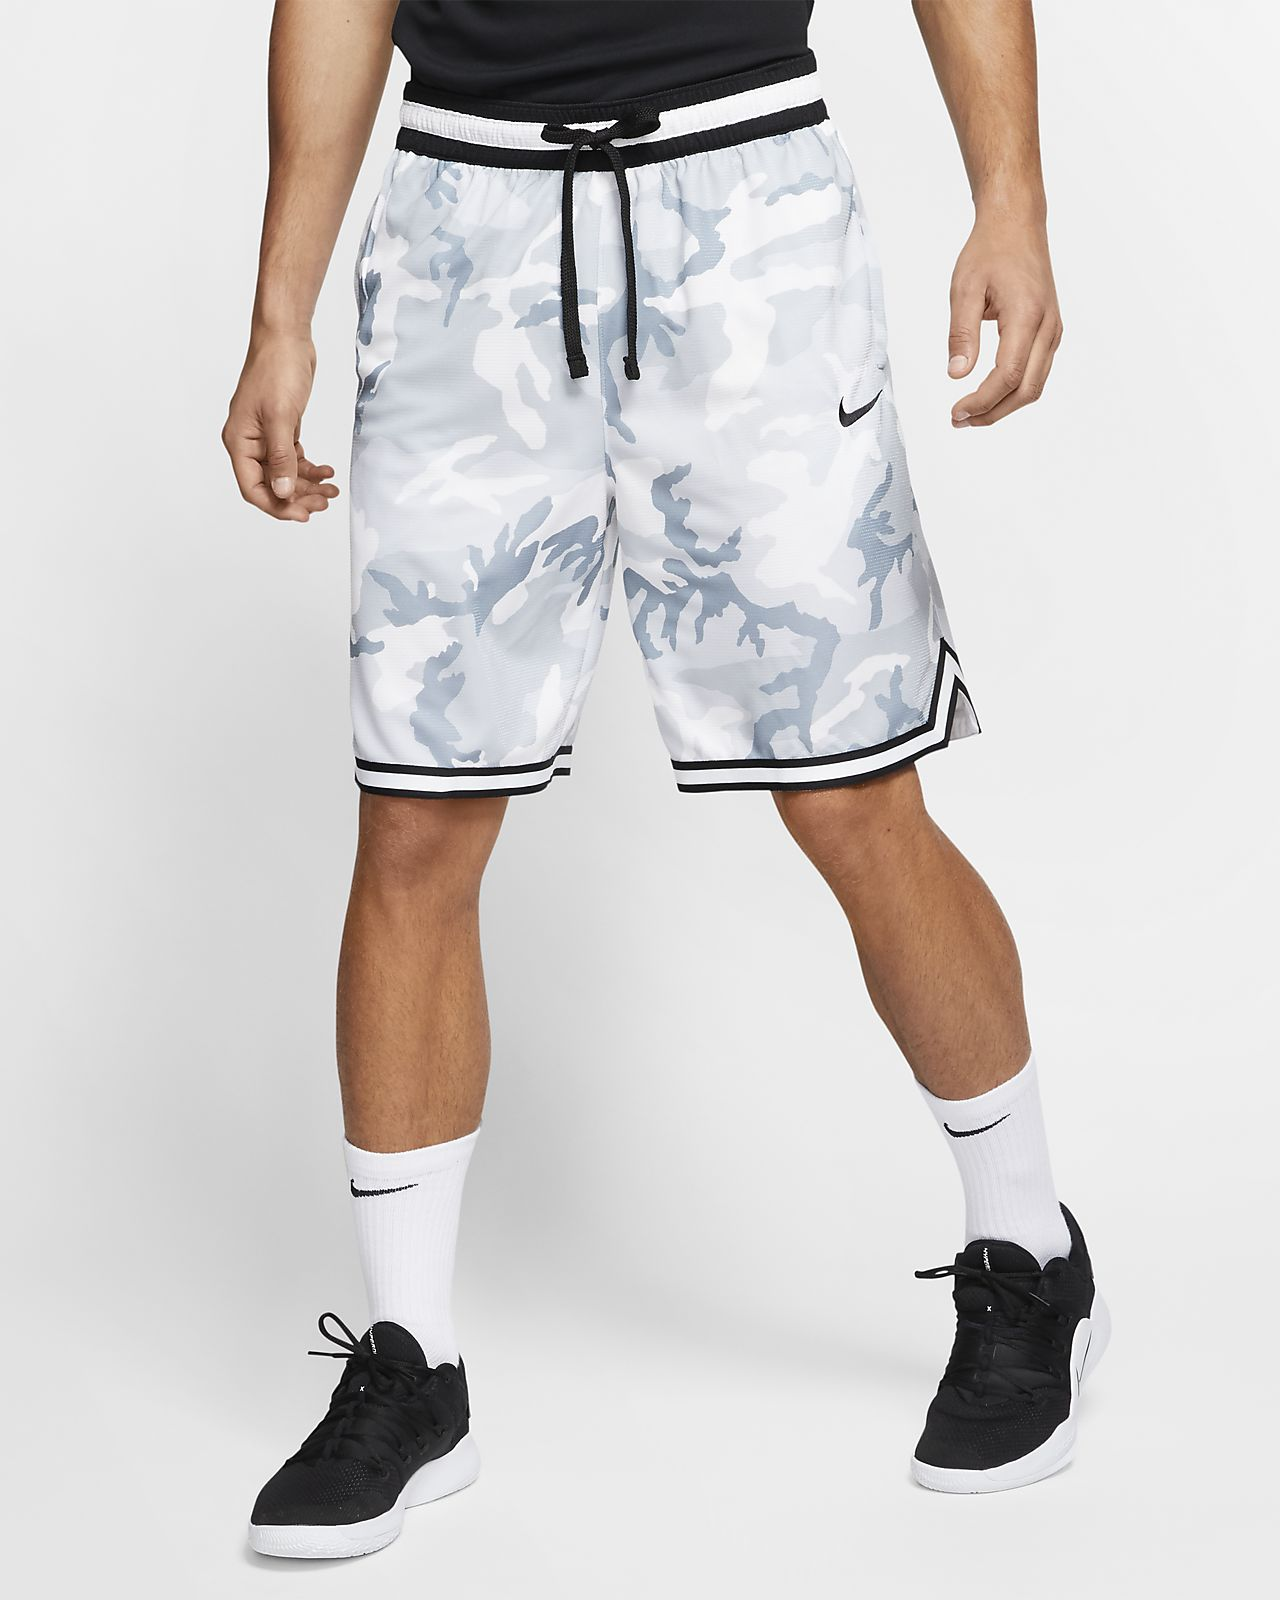 Short de basketball Nike Dri FIT DNA